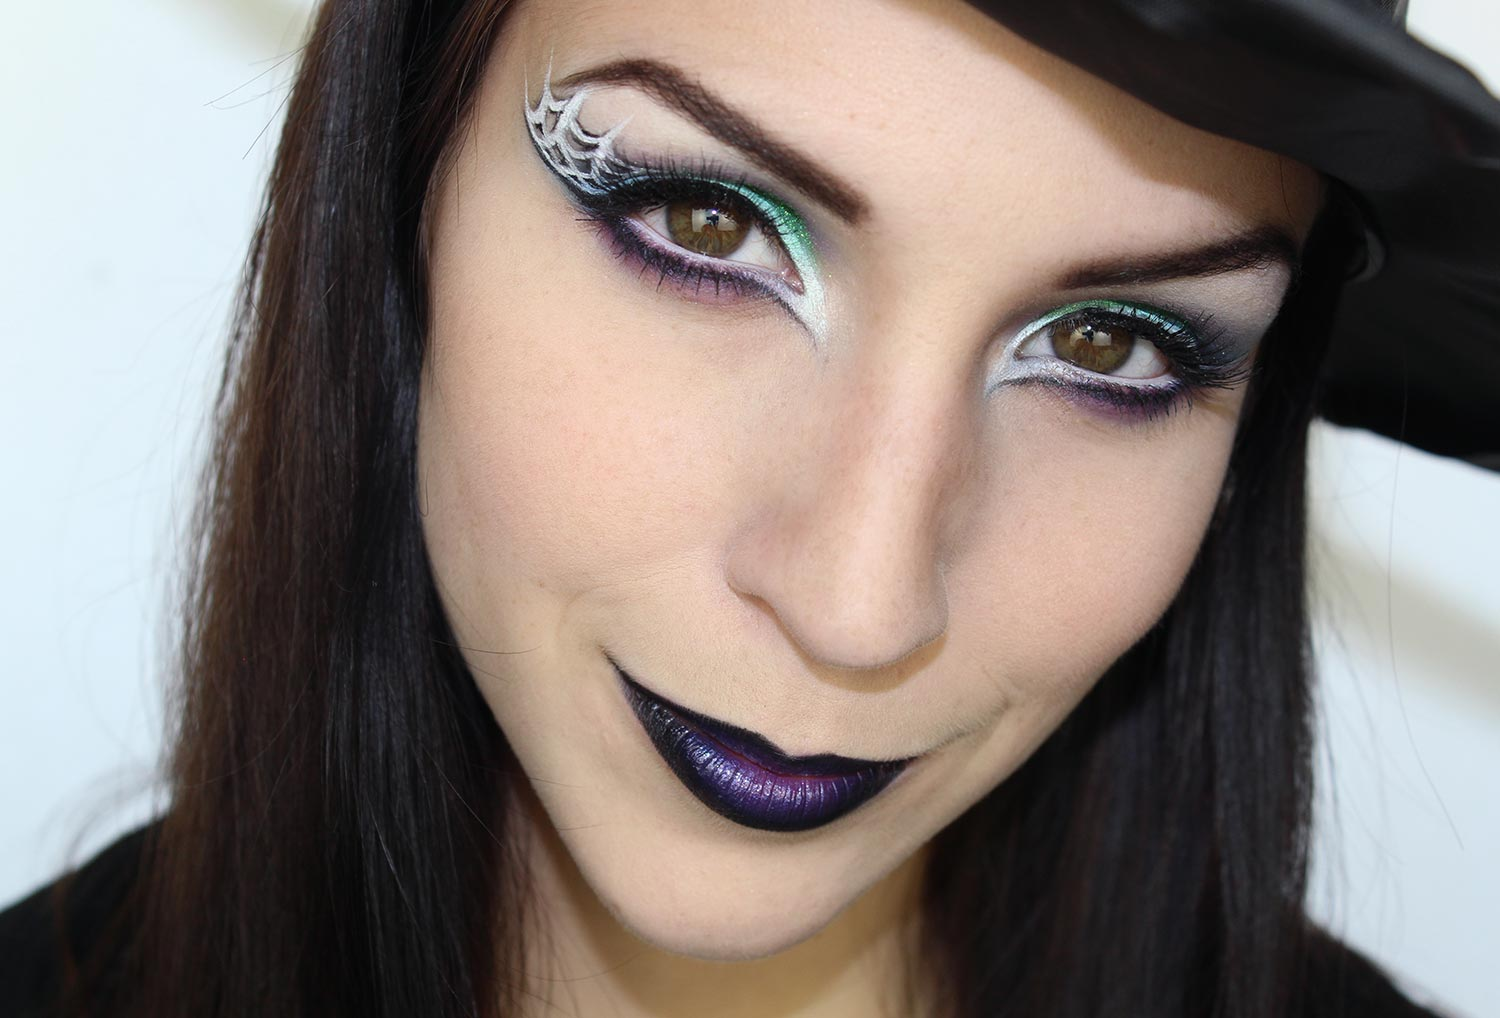 Maquillage halloween sorci re - Maquillage sorciere femme ...